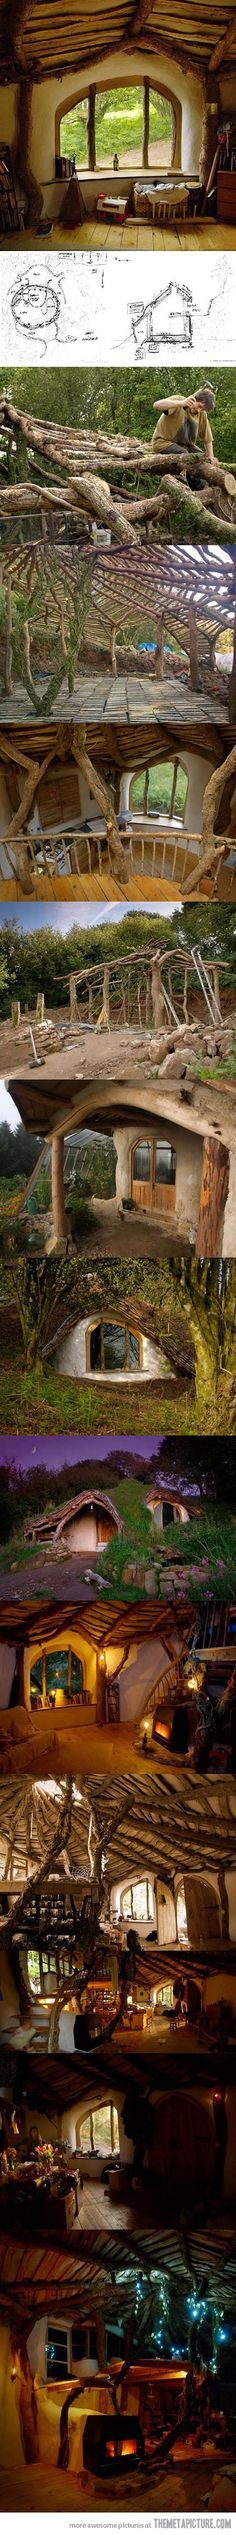 "How to build a Hobbit house :) would make an excellent ""backyard getaway"" type deal! Have family sleepovers in there when it snows, for holidays, or just for fun!"